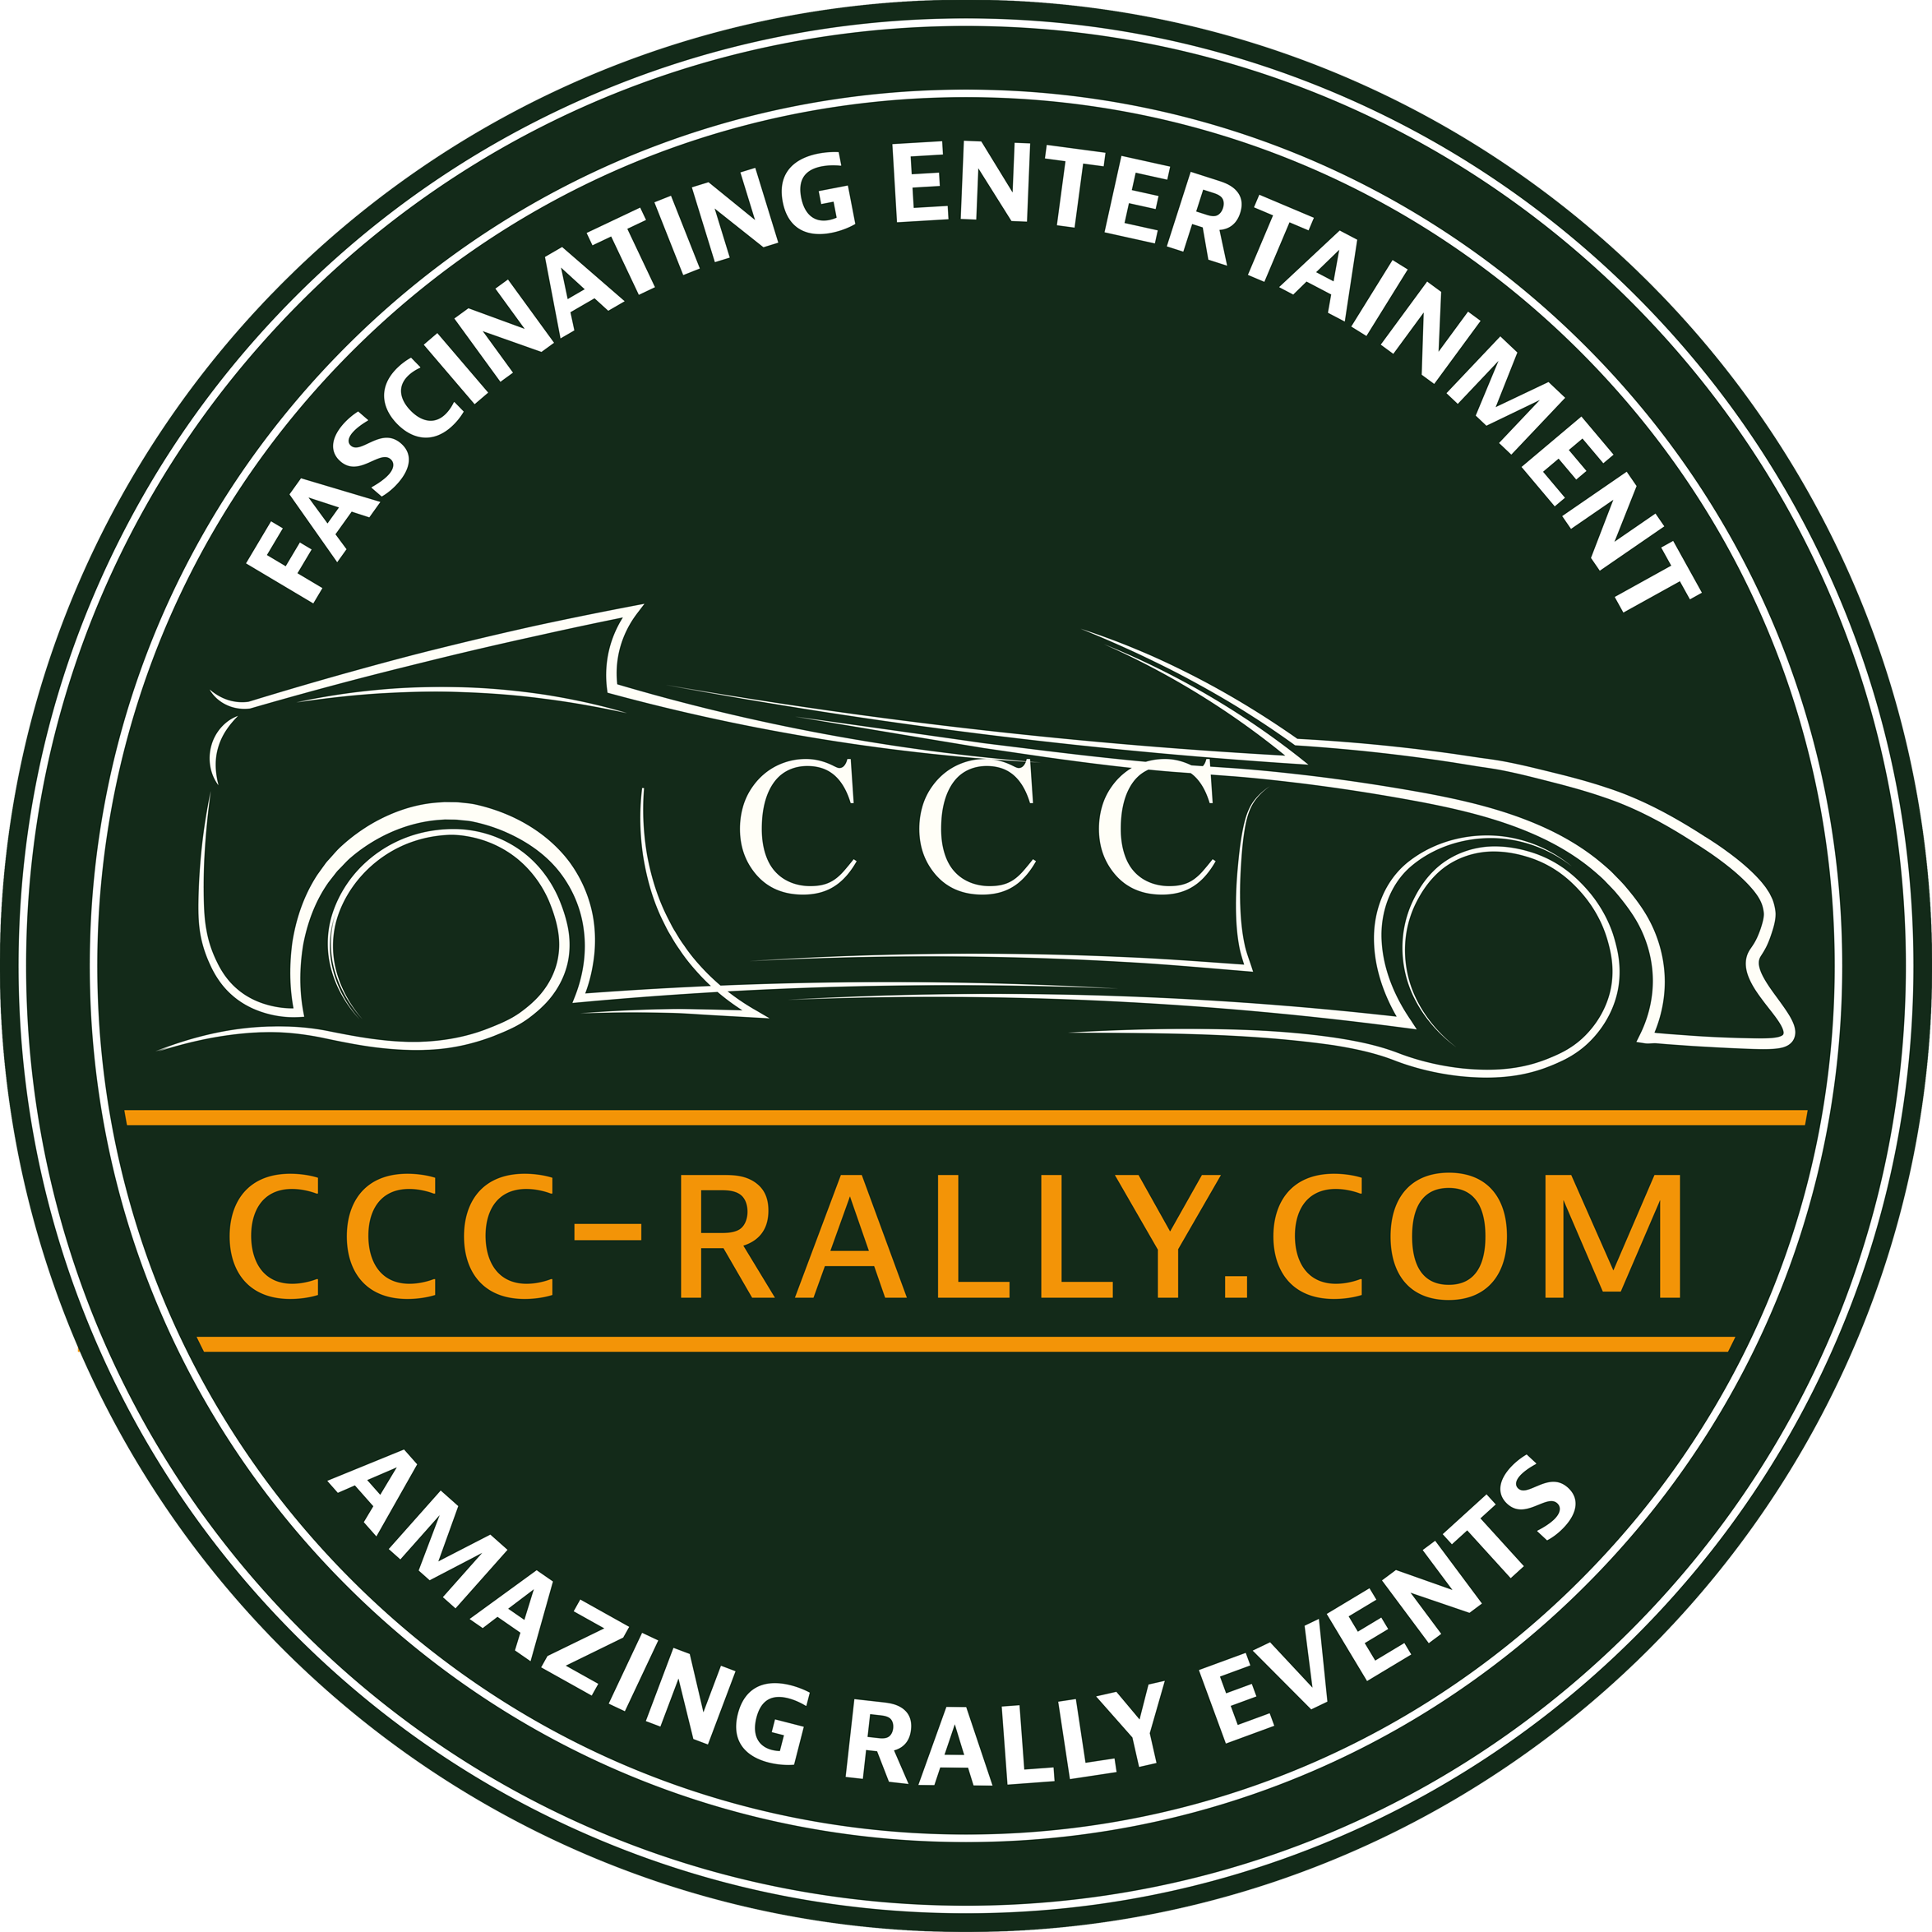 Classic, Cabrio en Cool amazing rally events